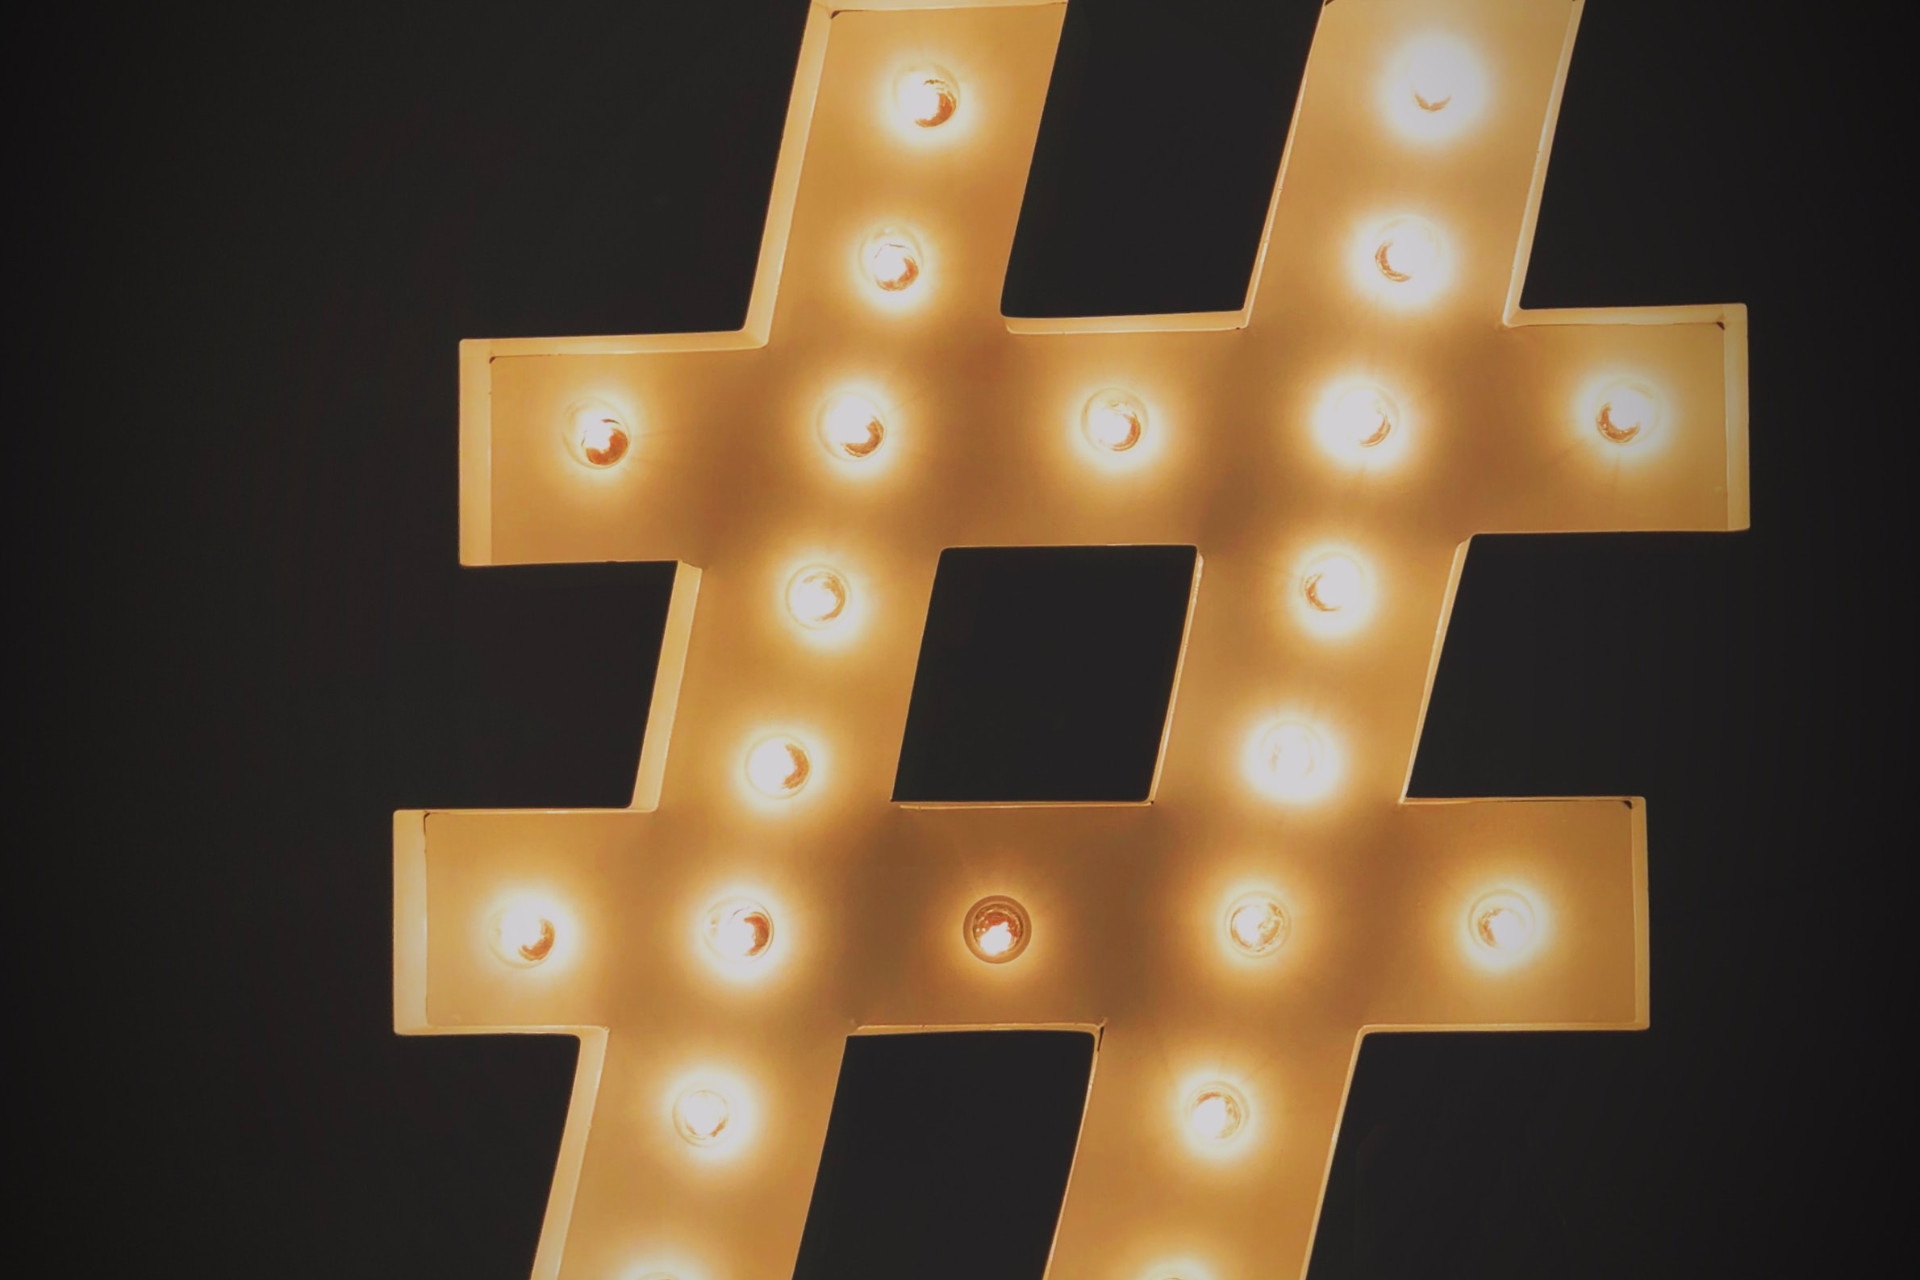 lit up hashtag symbol